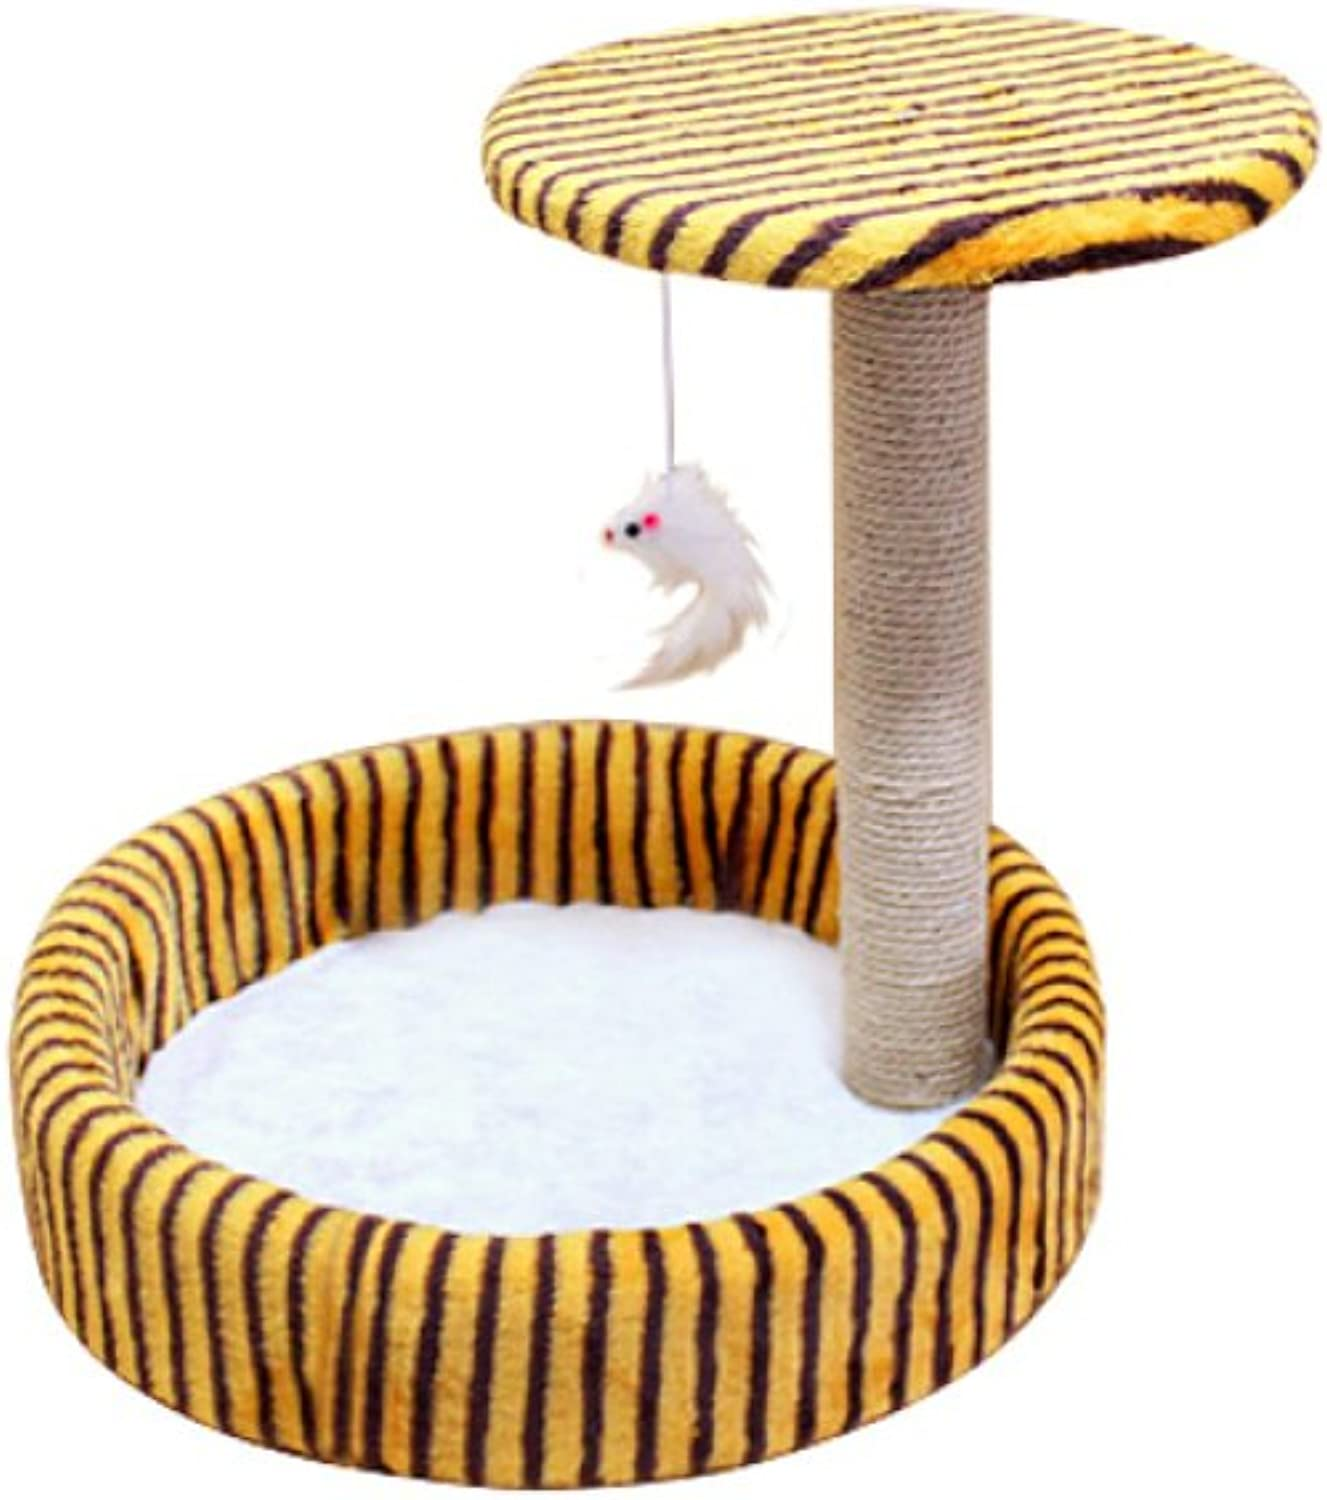 AYCC Cat Climbing Frame, Cute Cat Sisal Toy, Tree House Claw Cat Toy, Climbing Frame, Durable, Pet Supplies,Yellow